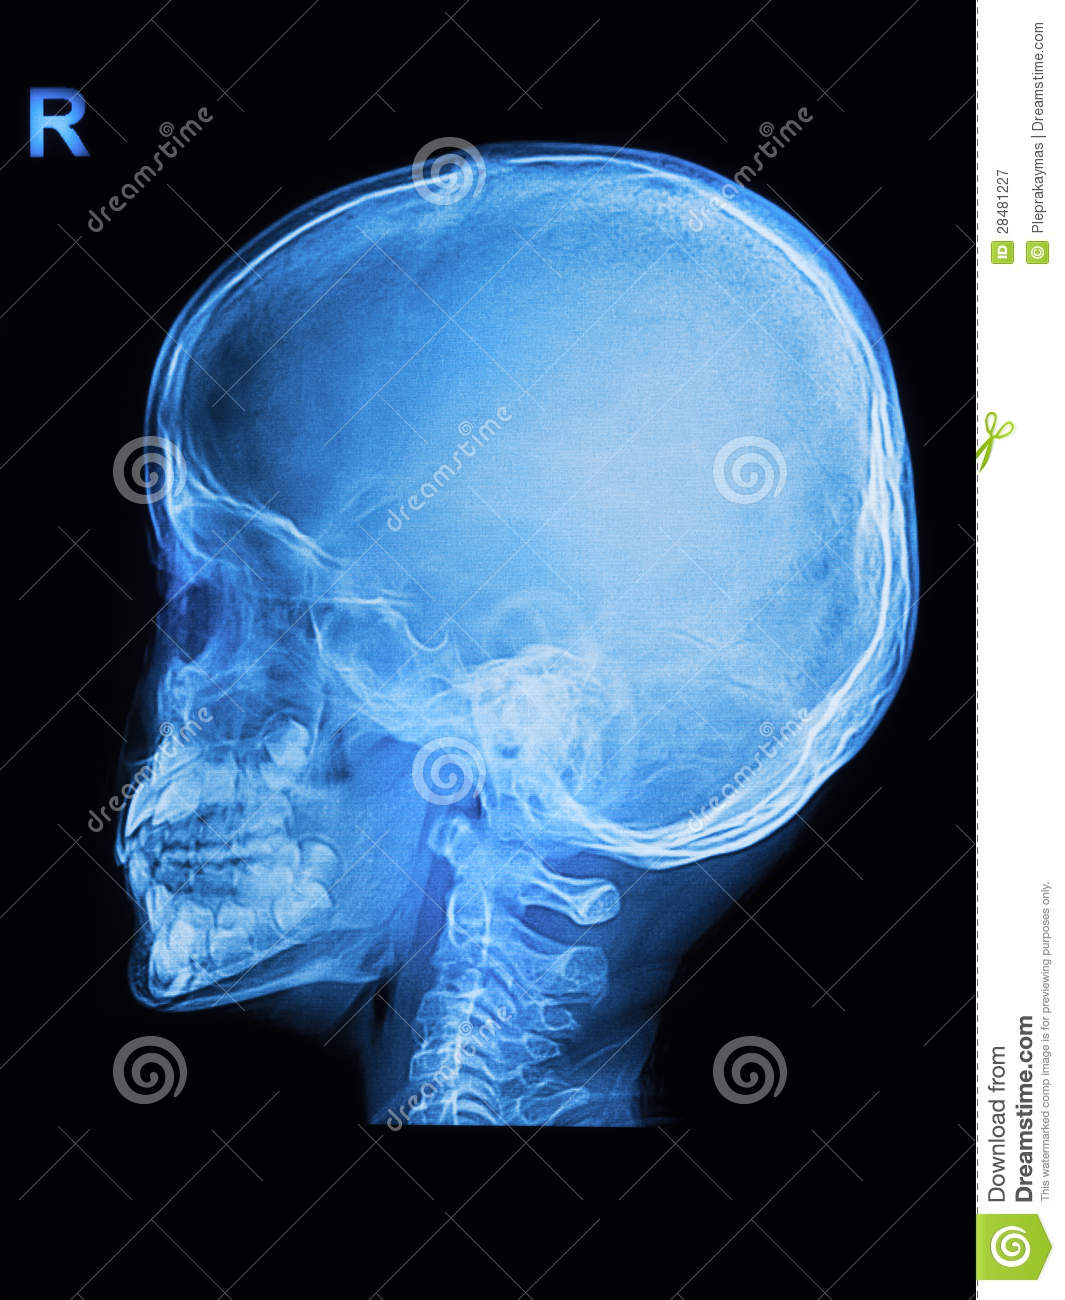 Children Skull X Rays Image Royalty Free Stock Photography